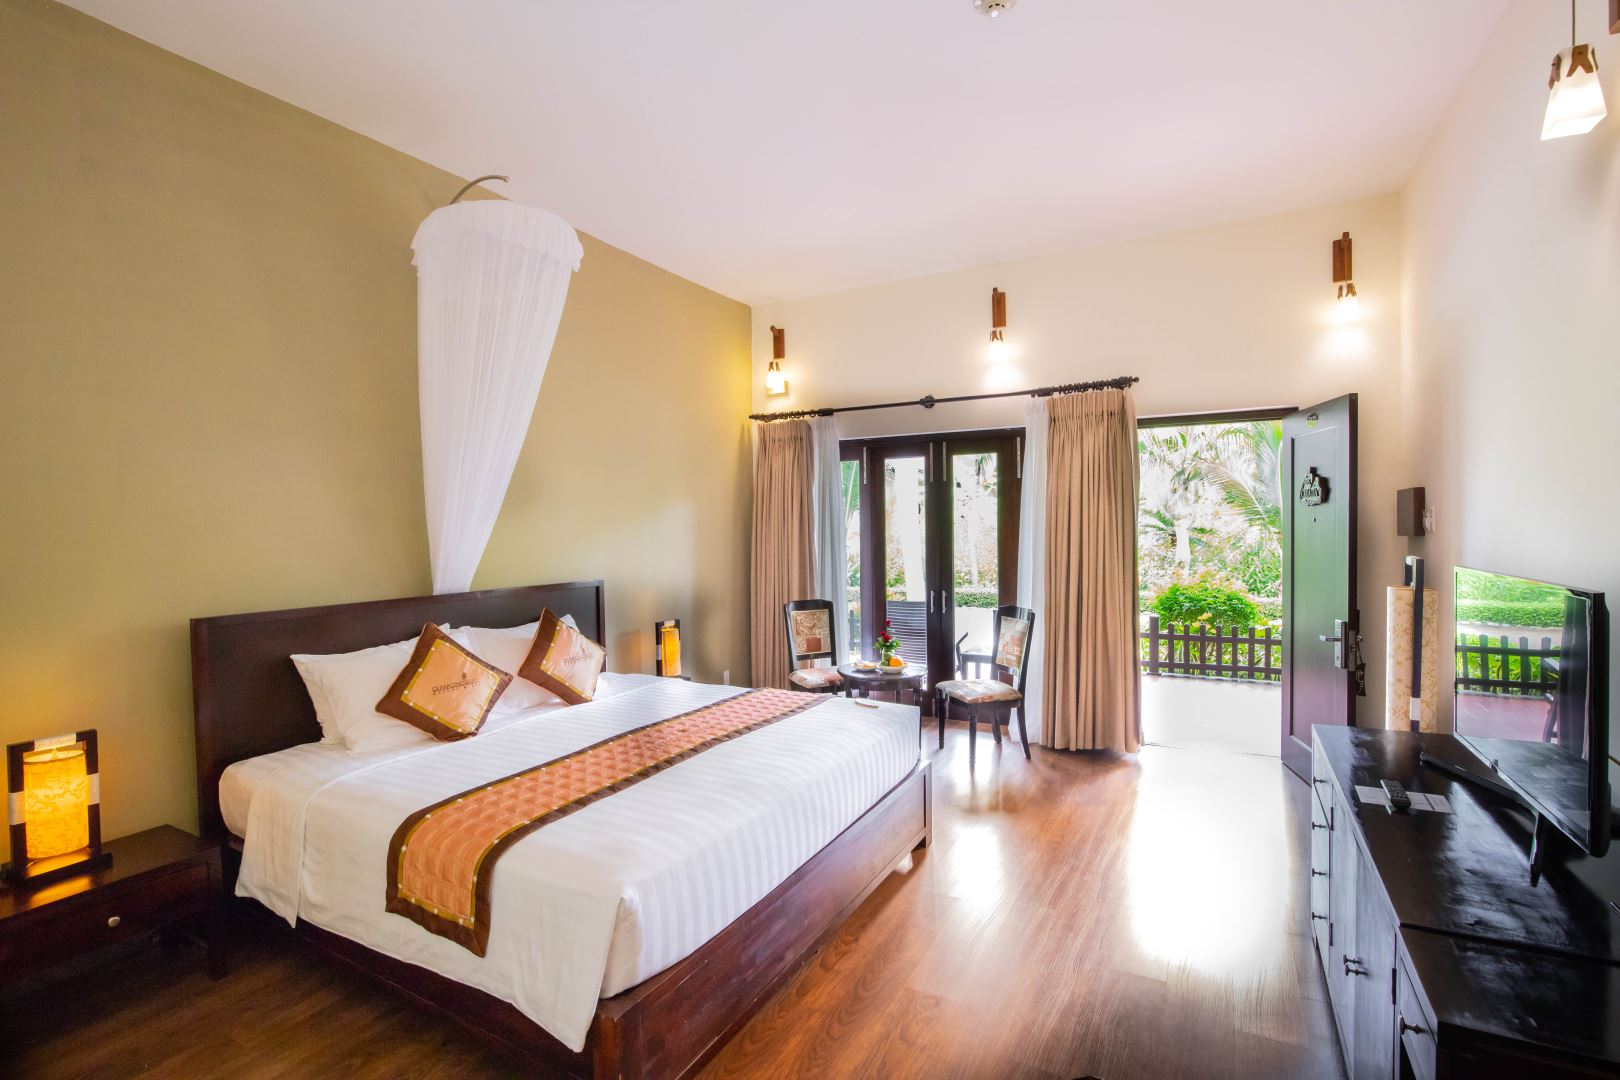 GARDEN BUNGALOW 2 DAYS 01 NIGHT 3.200.000 NETT